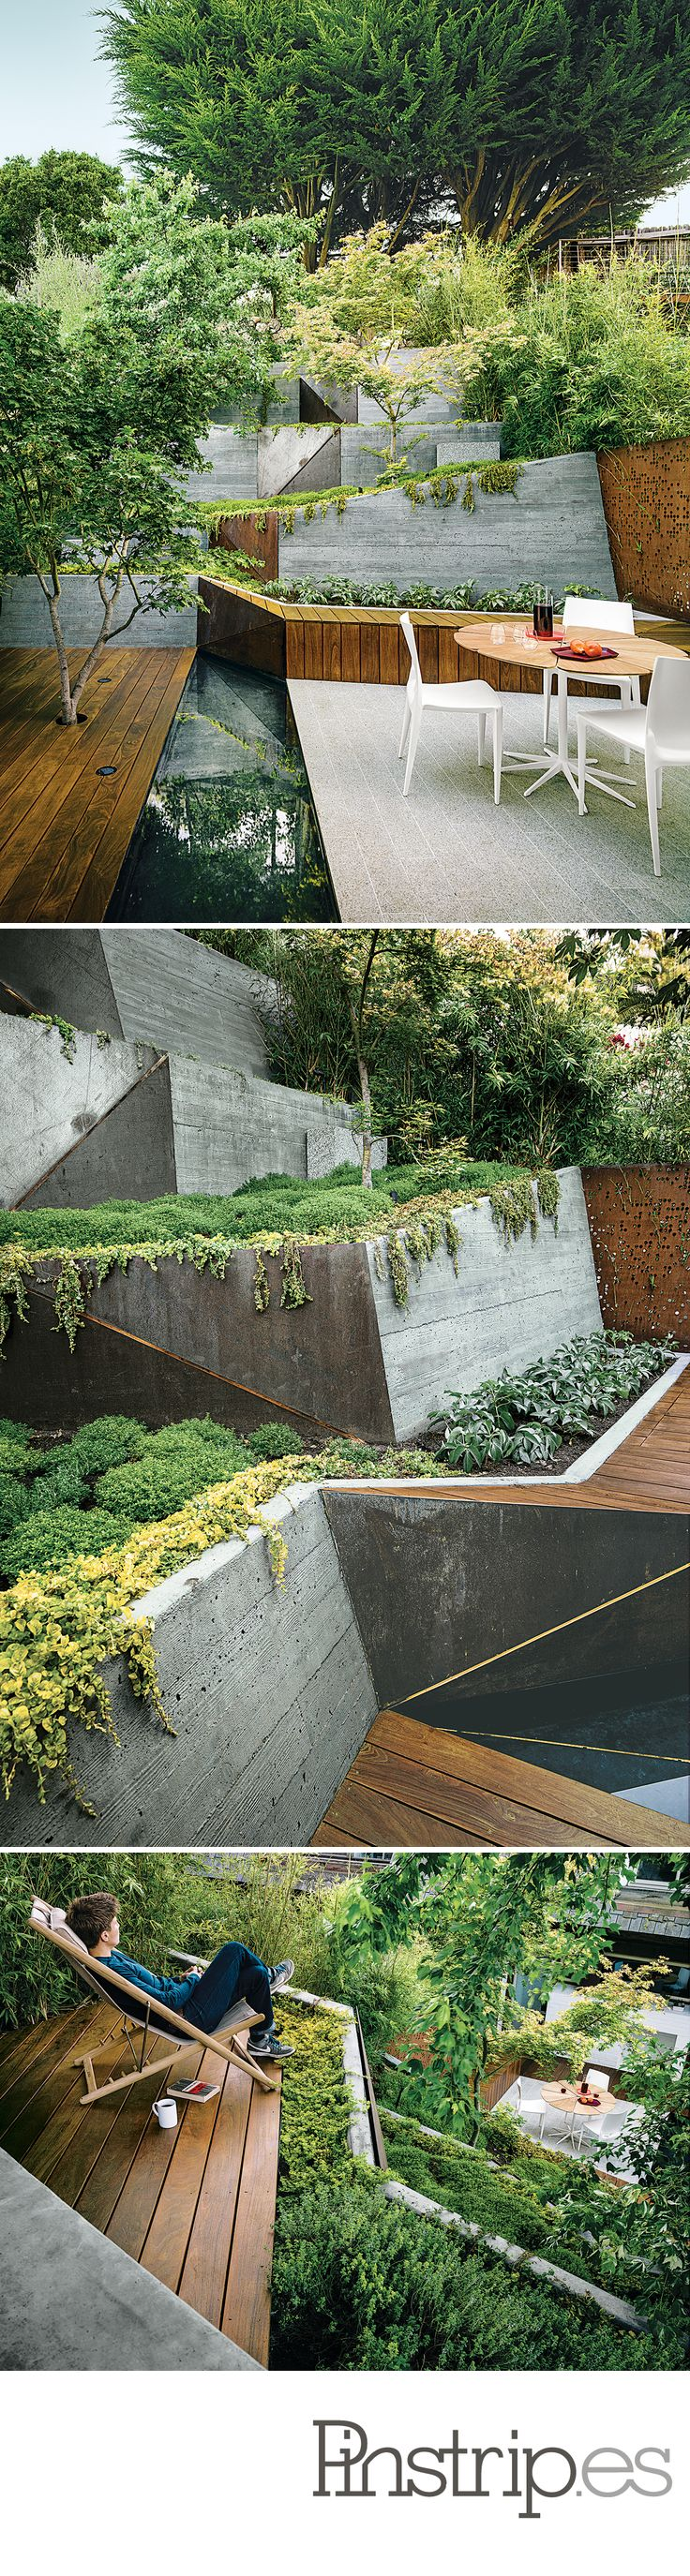 Japanese-inspired landscape design San Francisco. rails, we don't need rails around a deck.